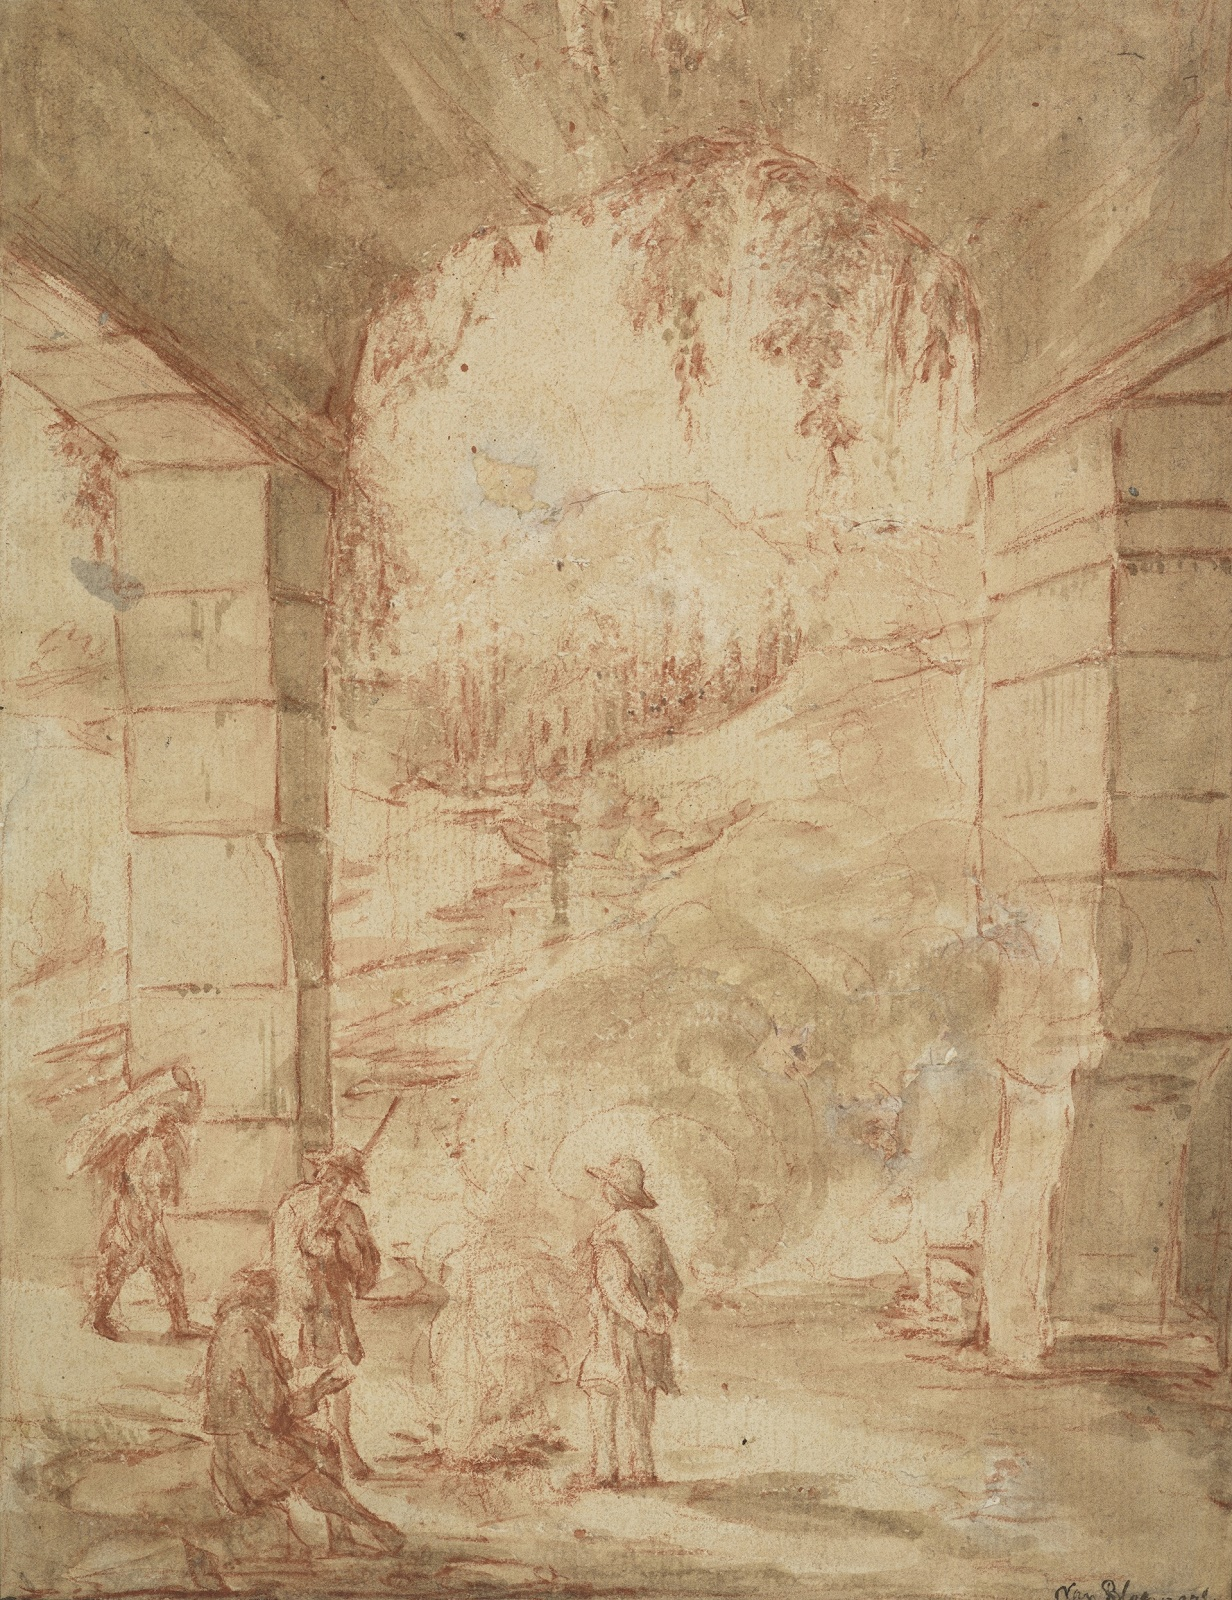 Spencer Alley: Italianate Drawings by Nicolaes Berchem